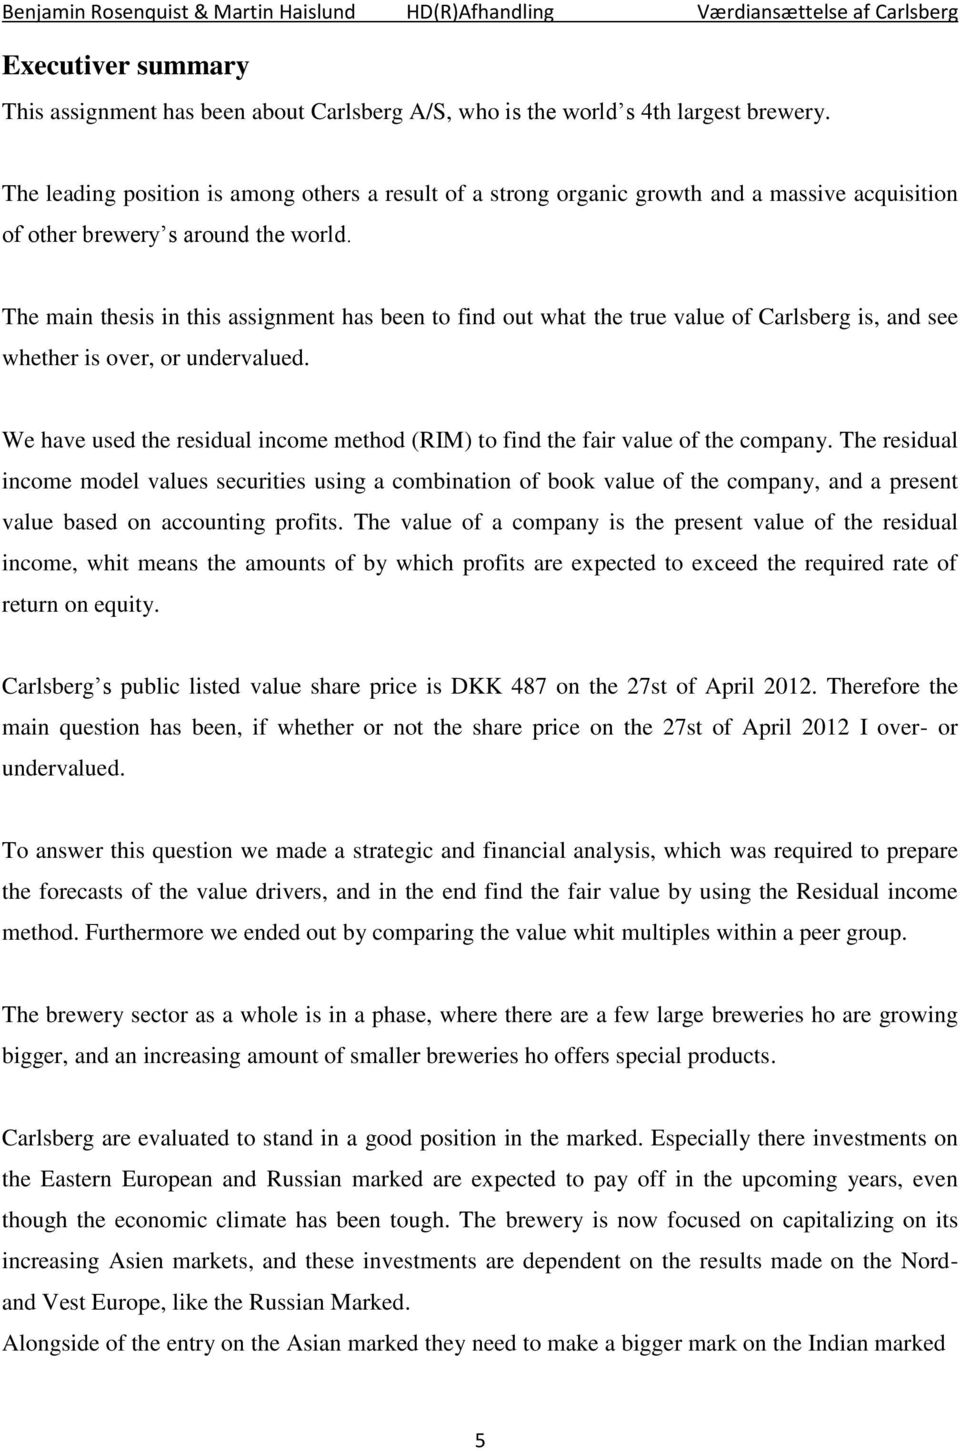 The main thesis in this assignment has been to find out what the true value of Carlsberg is, and see whether is over, or undervalued.